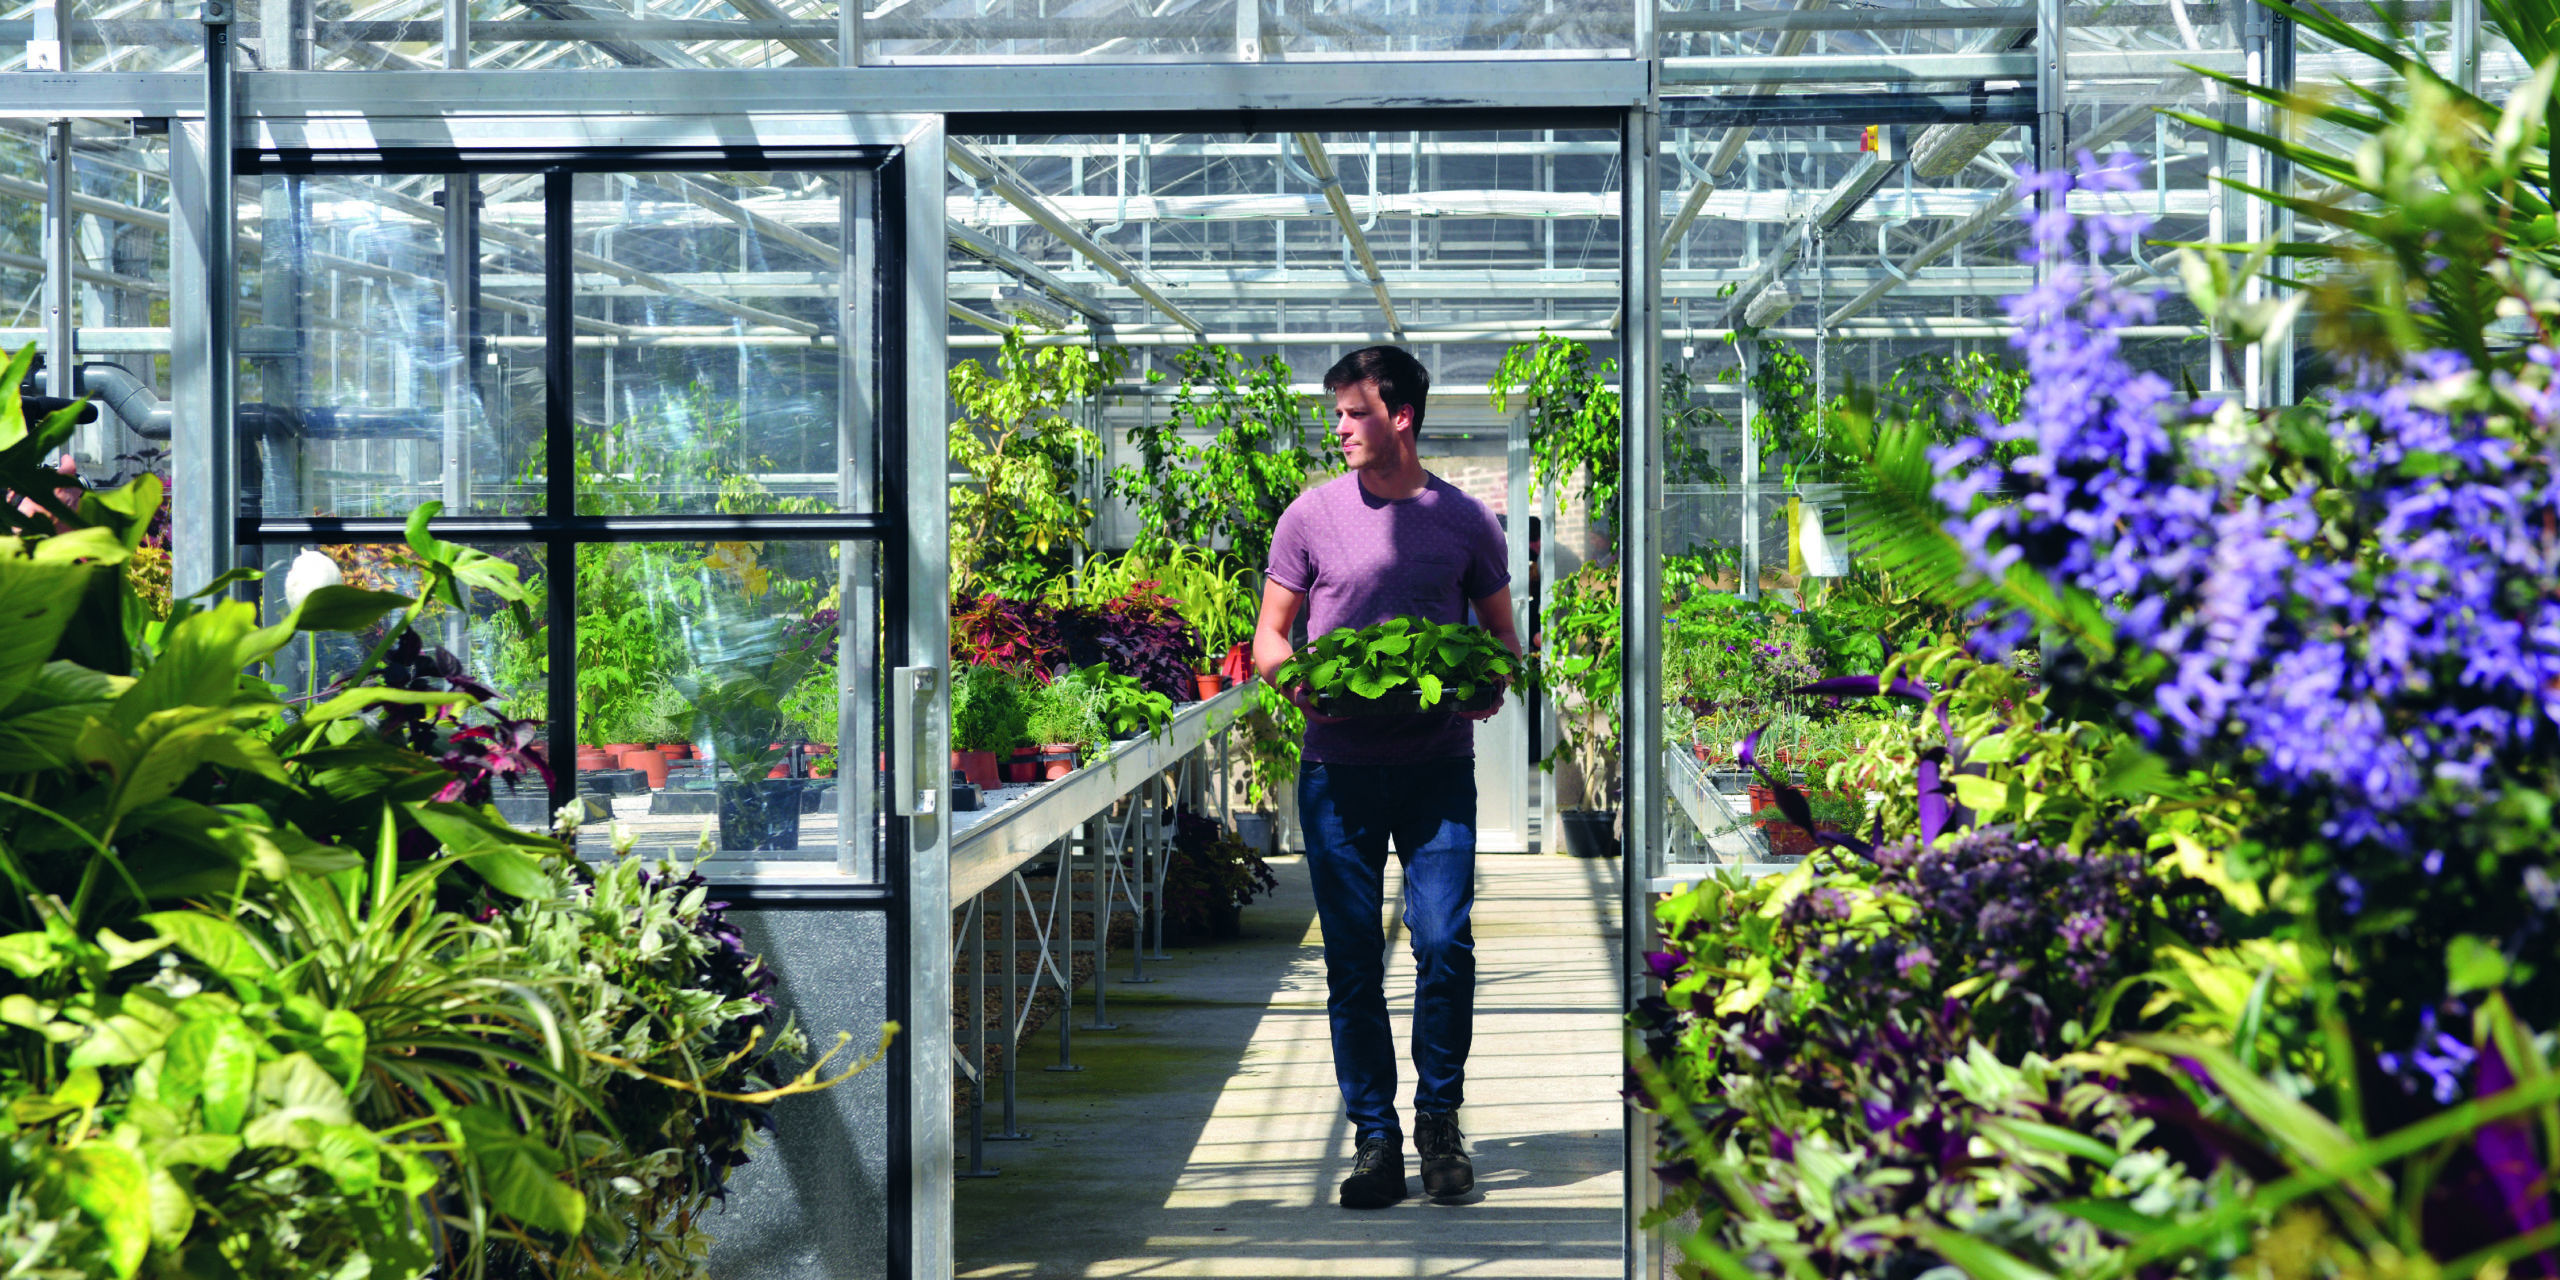 Horticulture student carrying a plant walking through Glasshouse on Kingston Maurward Estate